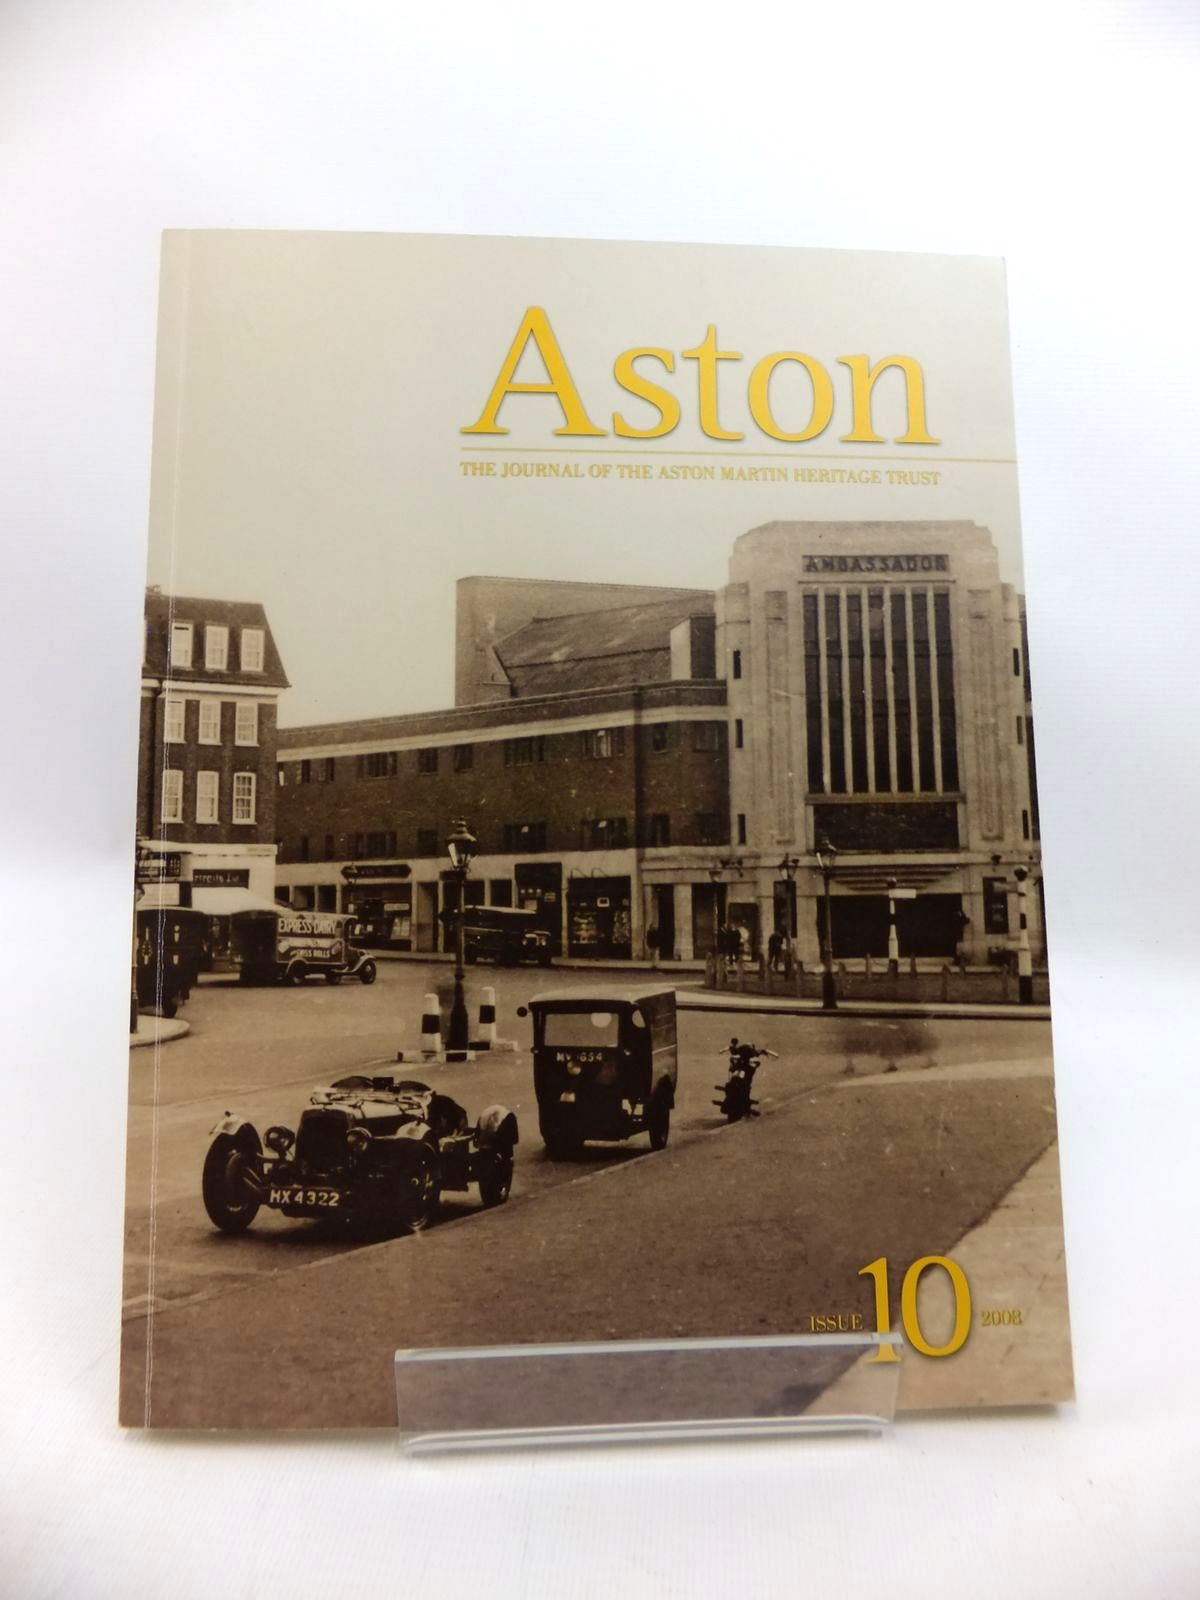 Photo of ASTON: THE JOURNAL OF THE ASTON MARTIN HERITAGE TRUST ISSUE 10 2008 published by Aston Martin (STOCK CODE: 1814274)  for sale by Stella & Rose's Books